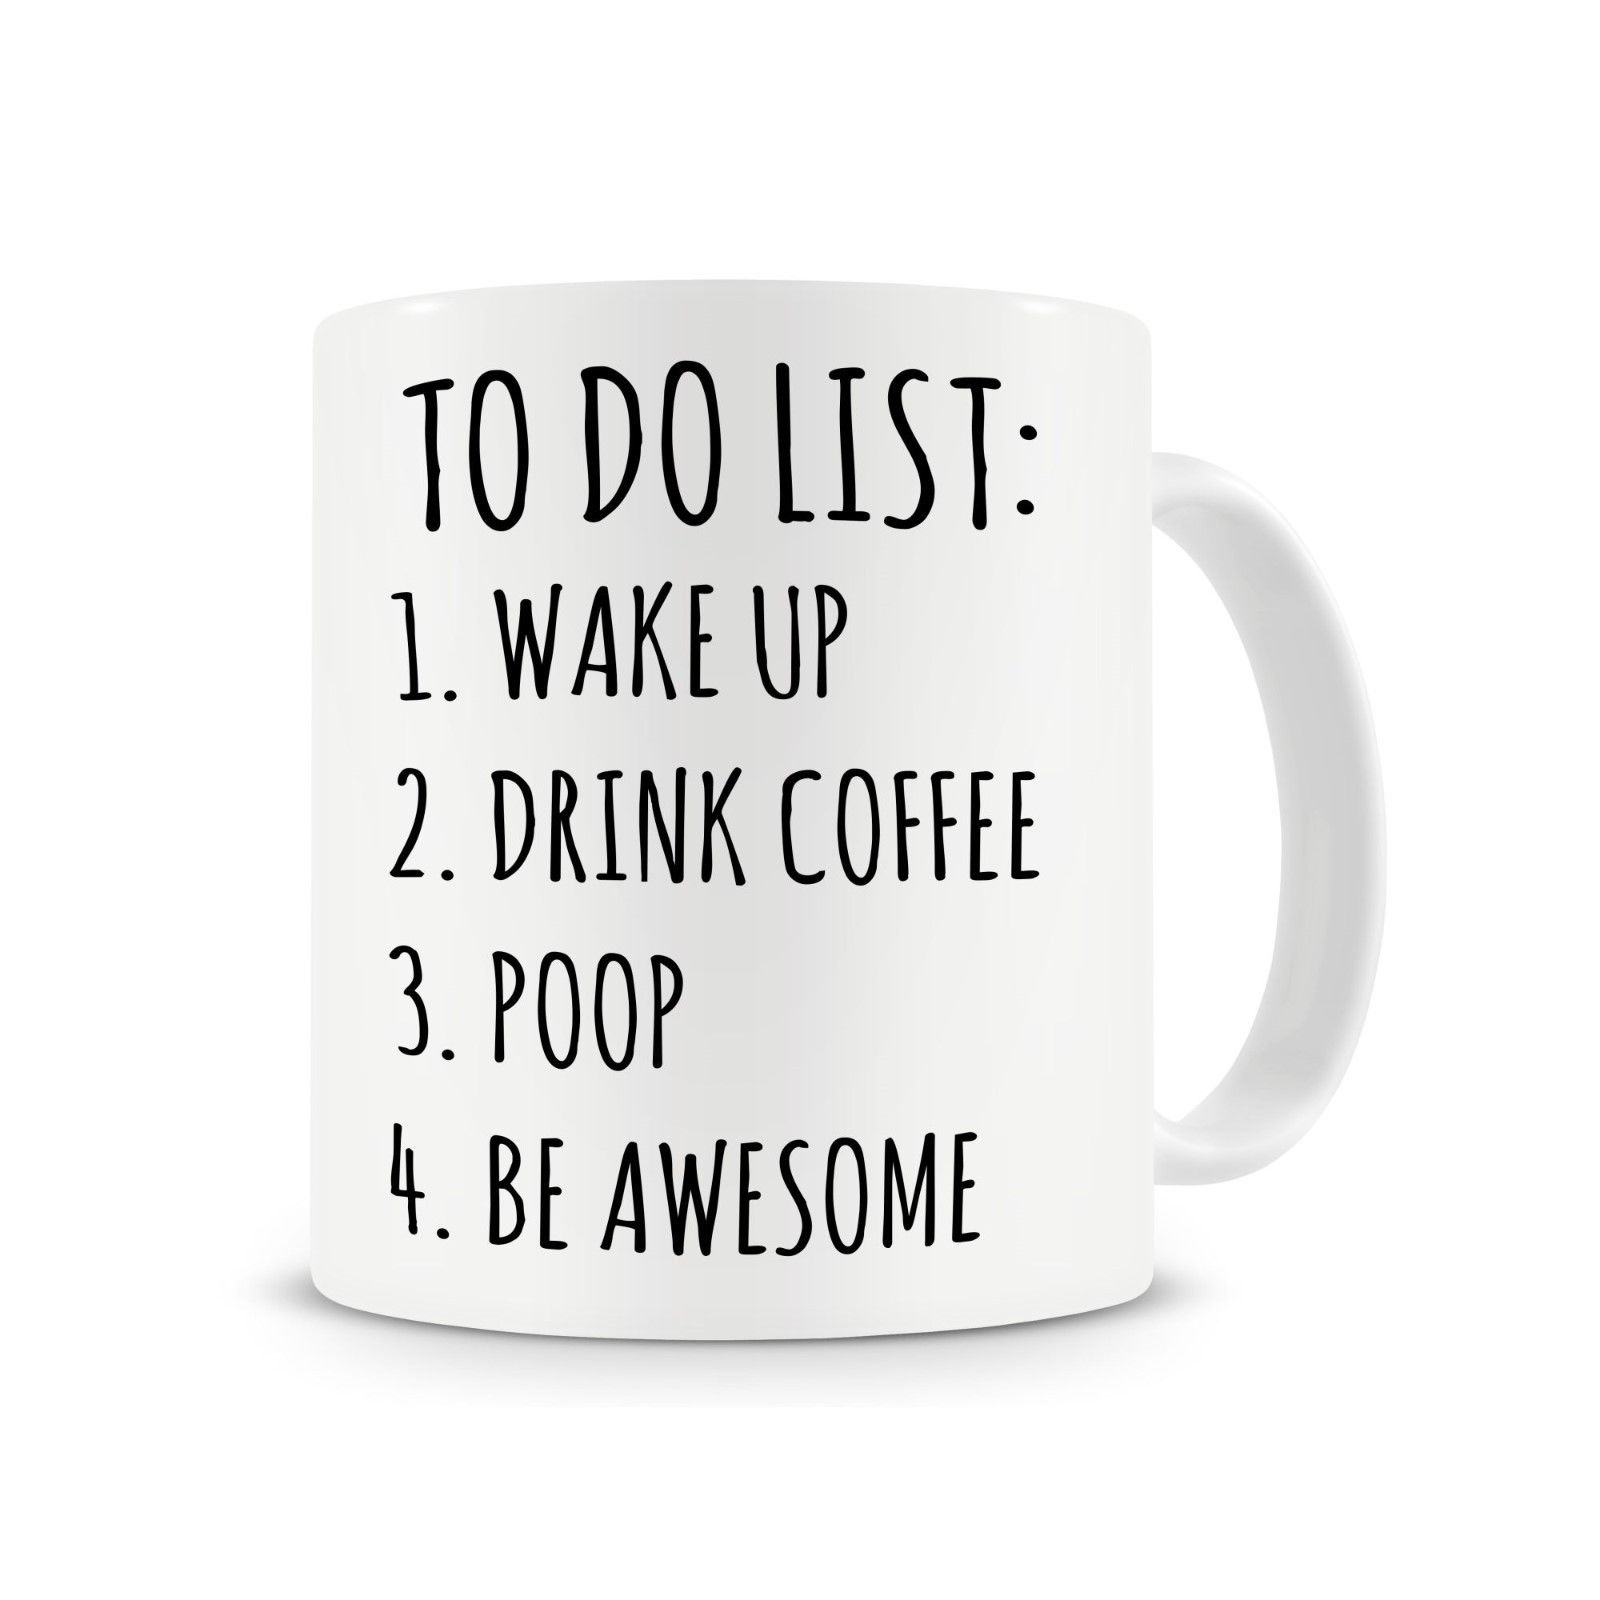 Funny Work Mugs Us 4 98 To Do List Poop Mug Funny Coffee Mug Office Mug Work Mugs Cup With Stirring Spoon Gift For Boss Boss In Mugs From Home Garden On